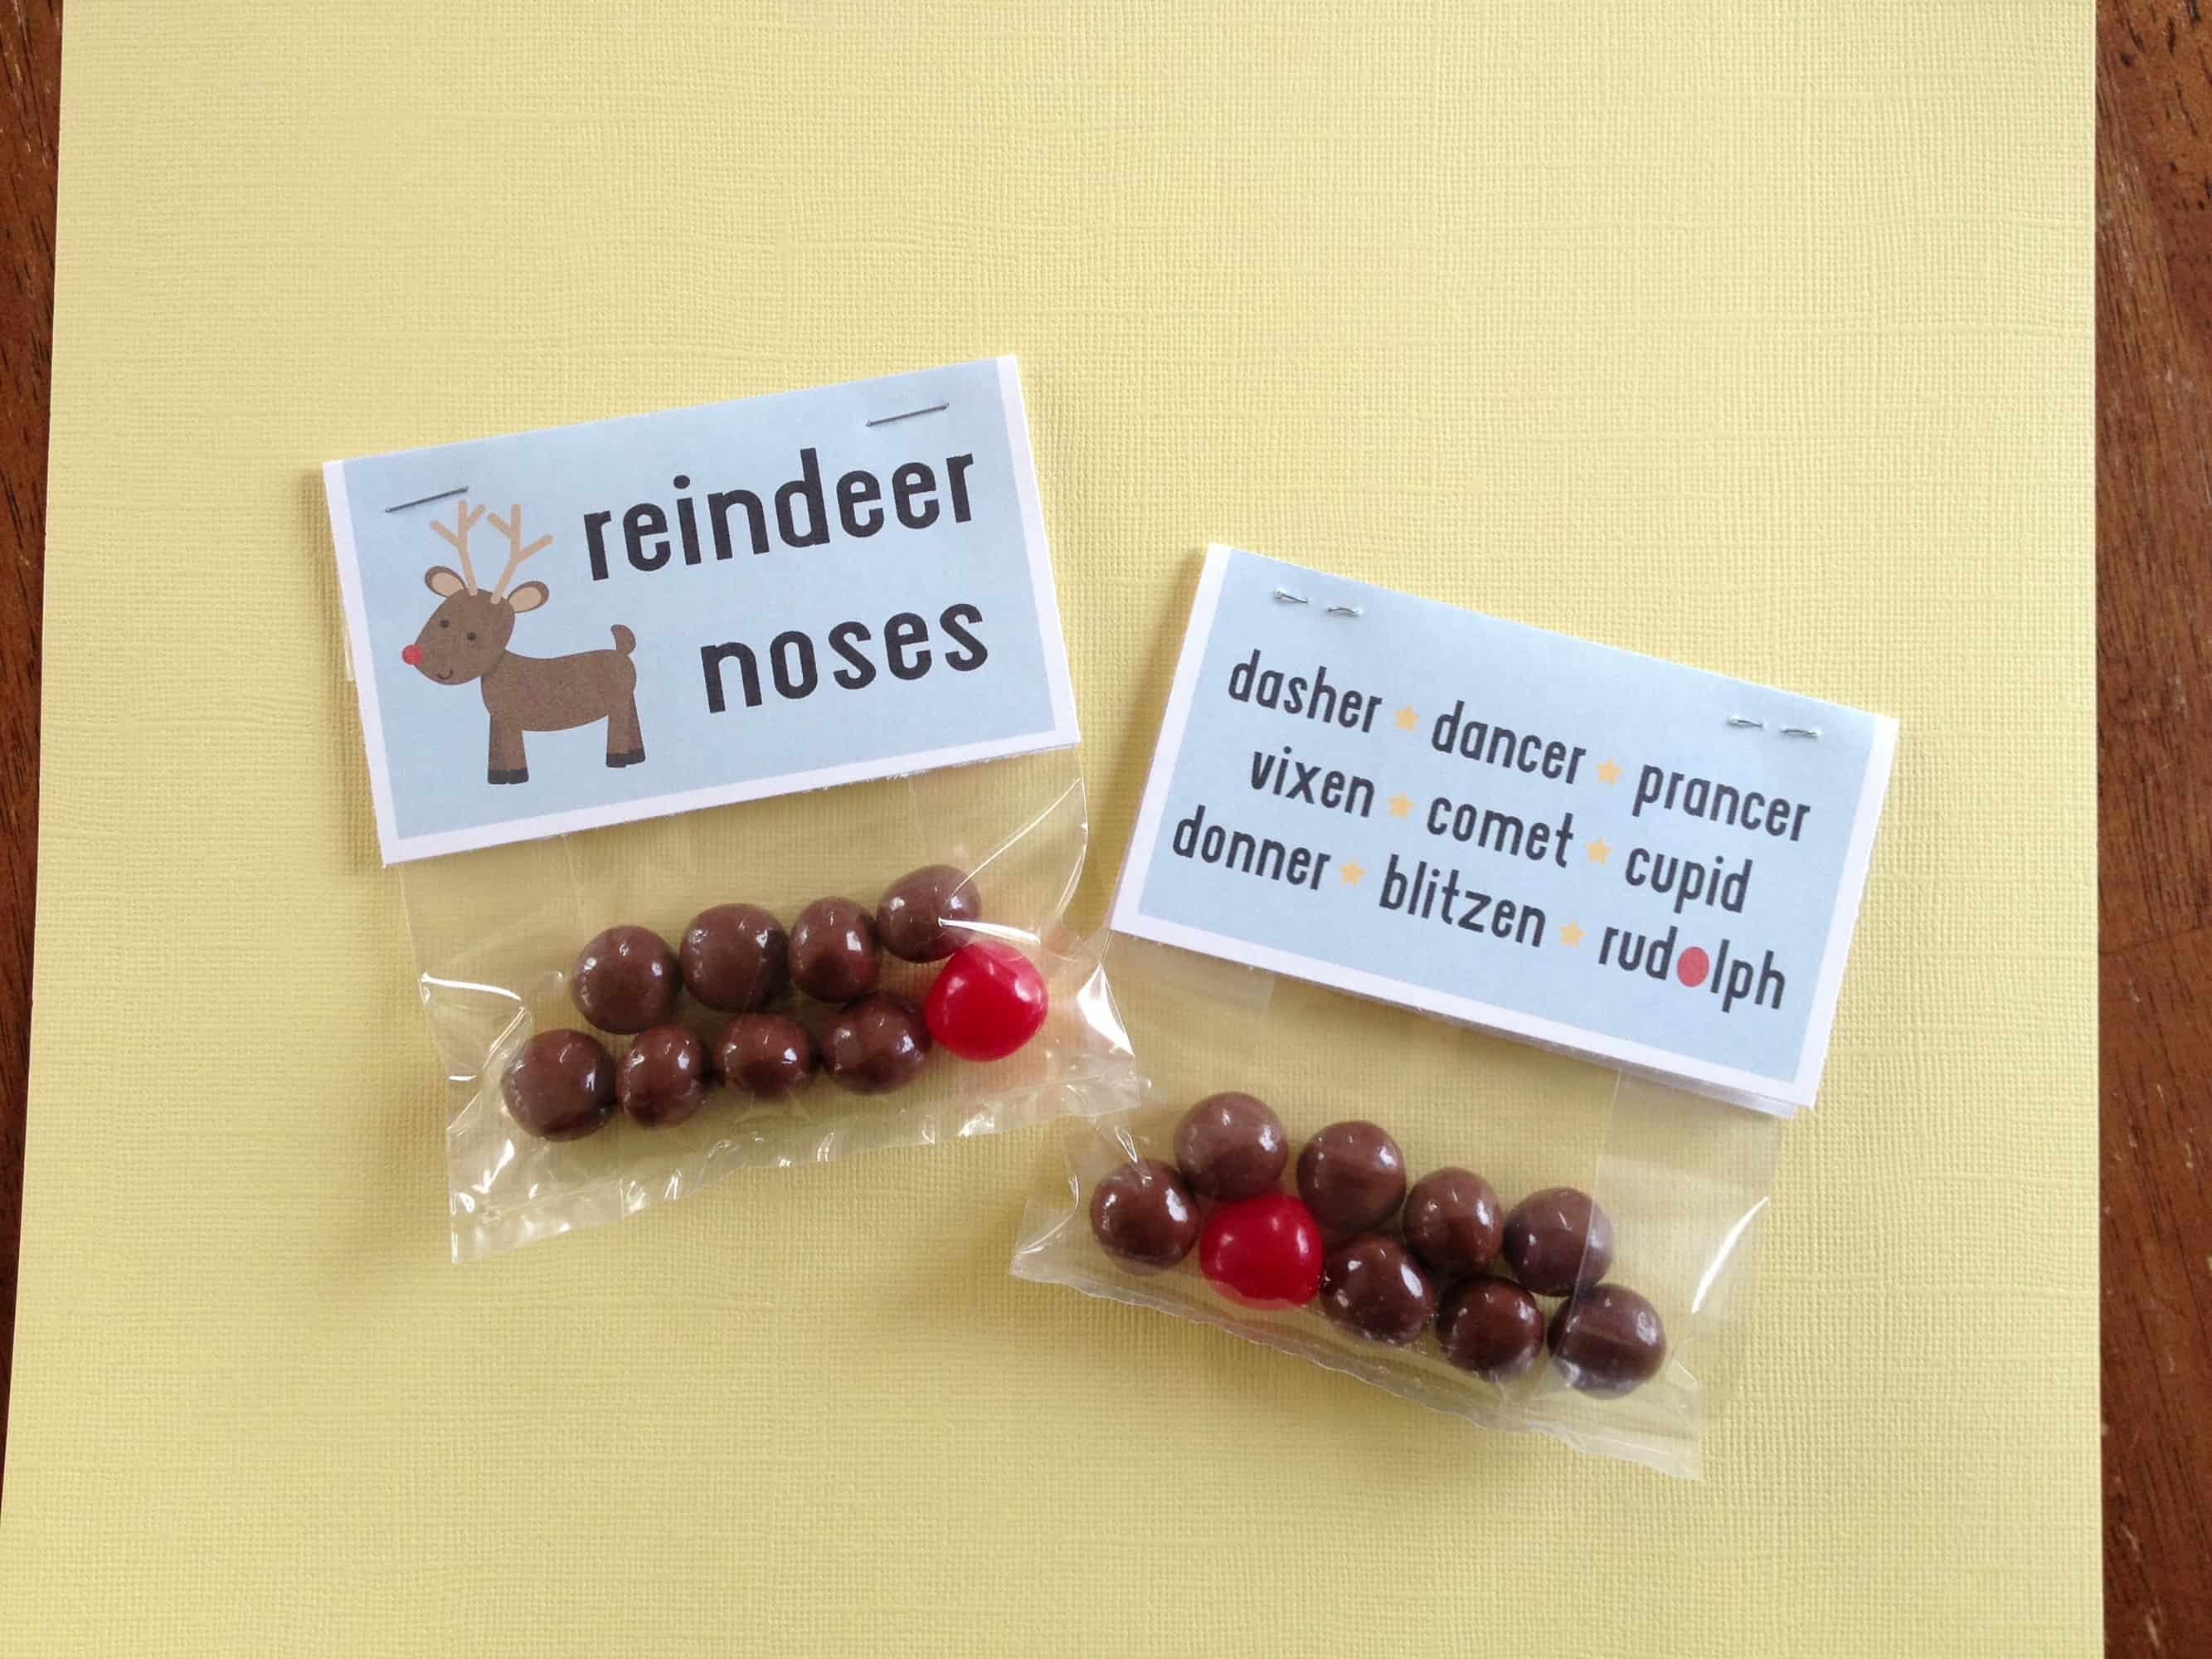 photograph about Reindeer Noses Printable called Reindeer Noses - No cost Printable